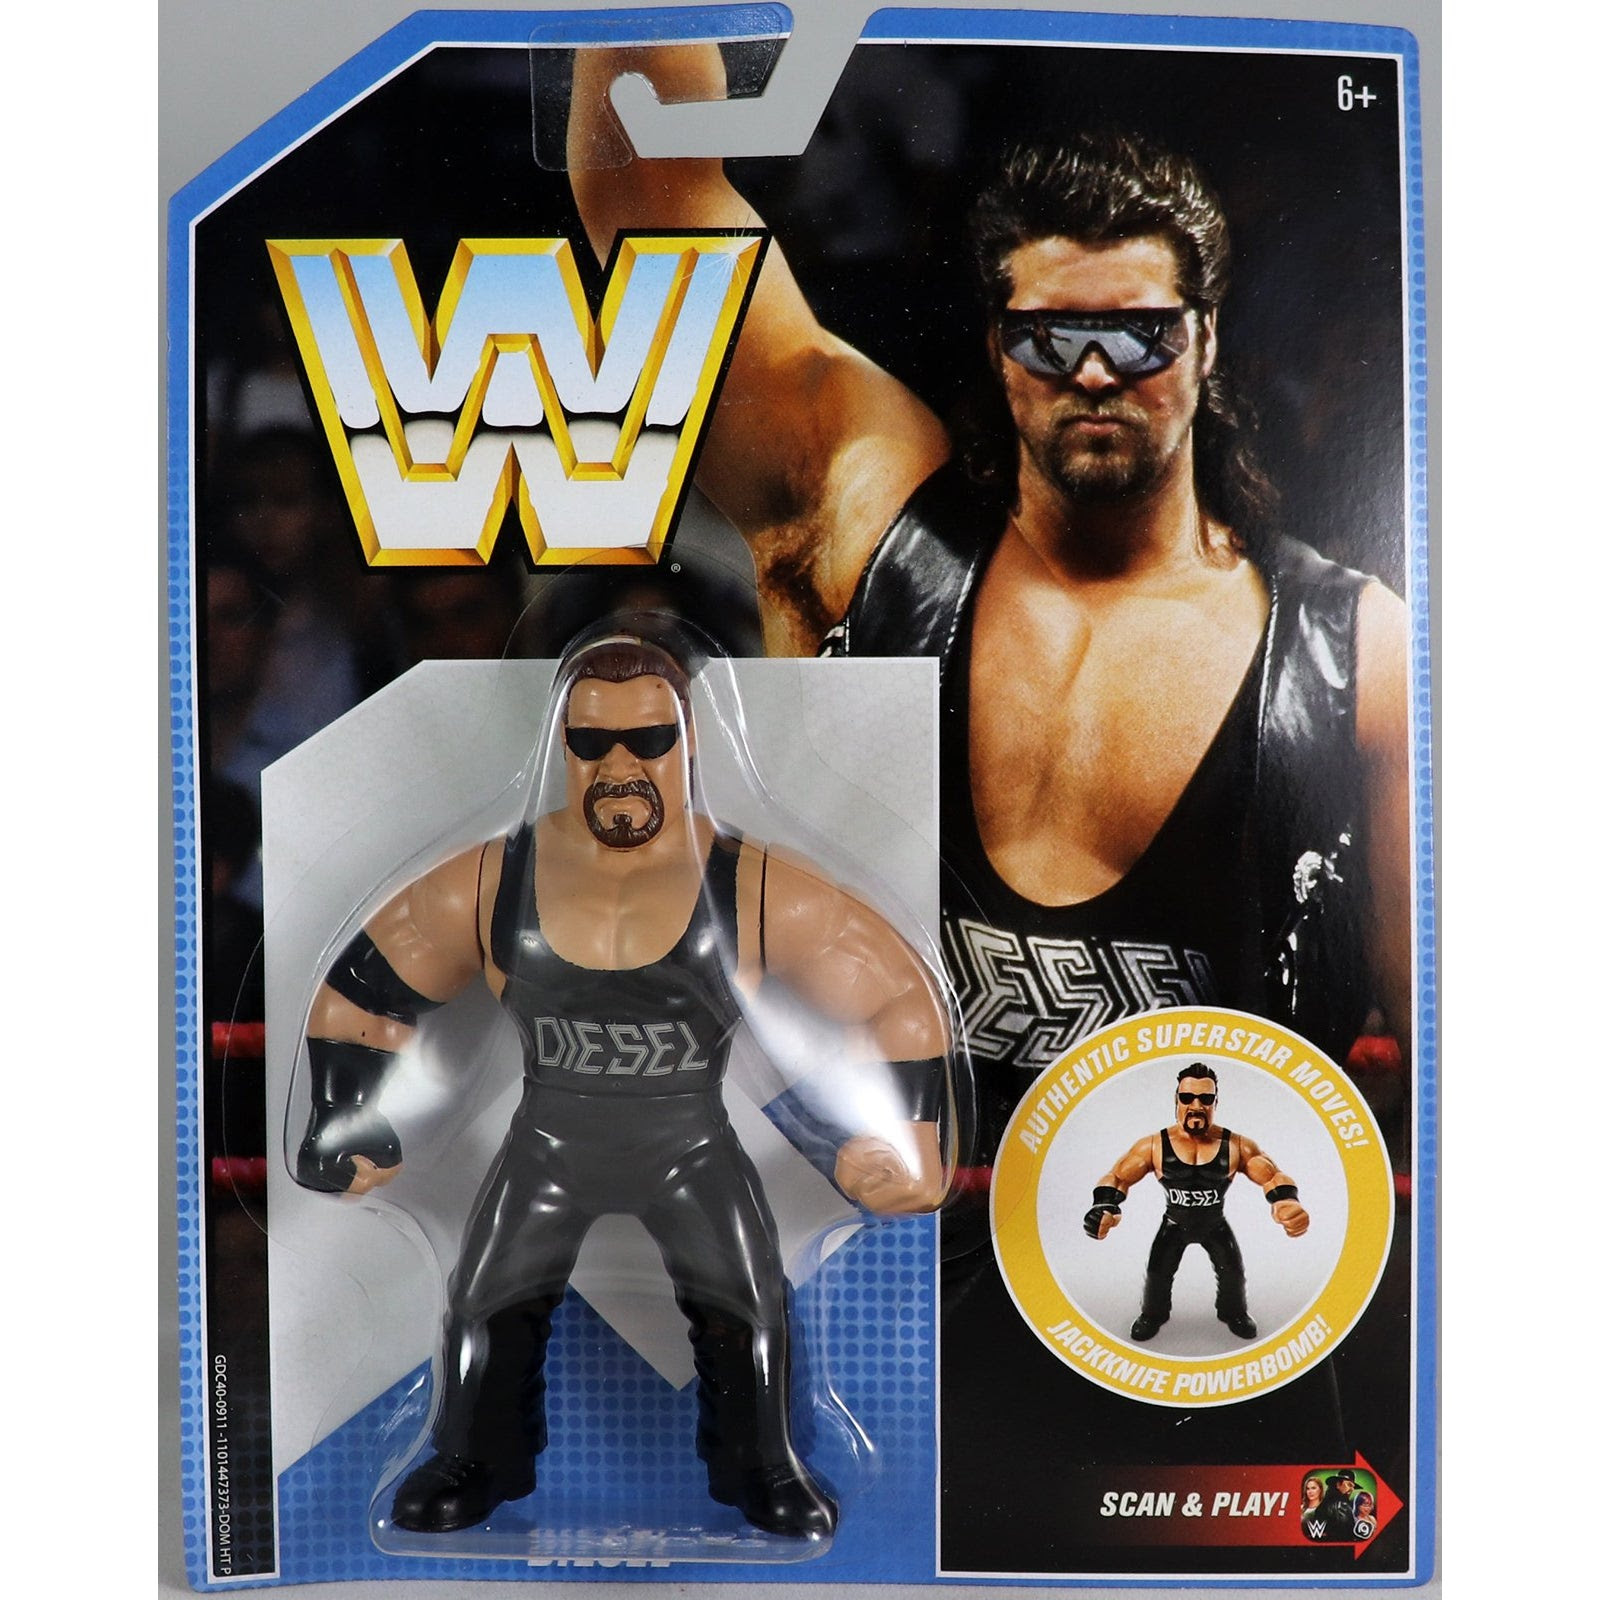 Image of WWE Retro Series 10 - Diesel